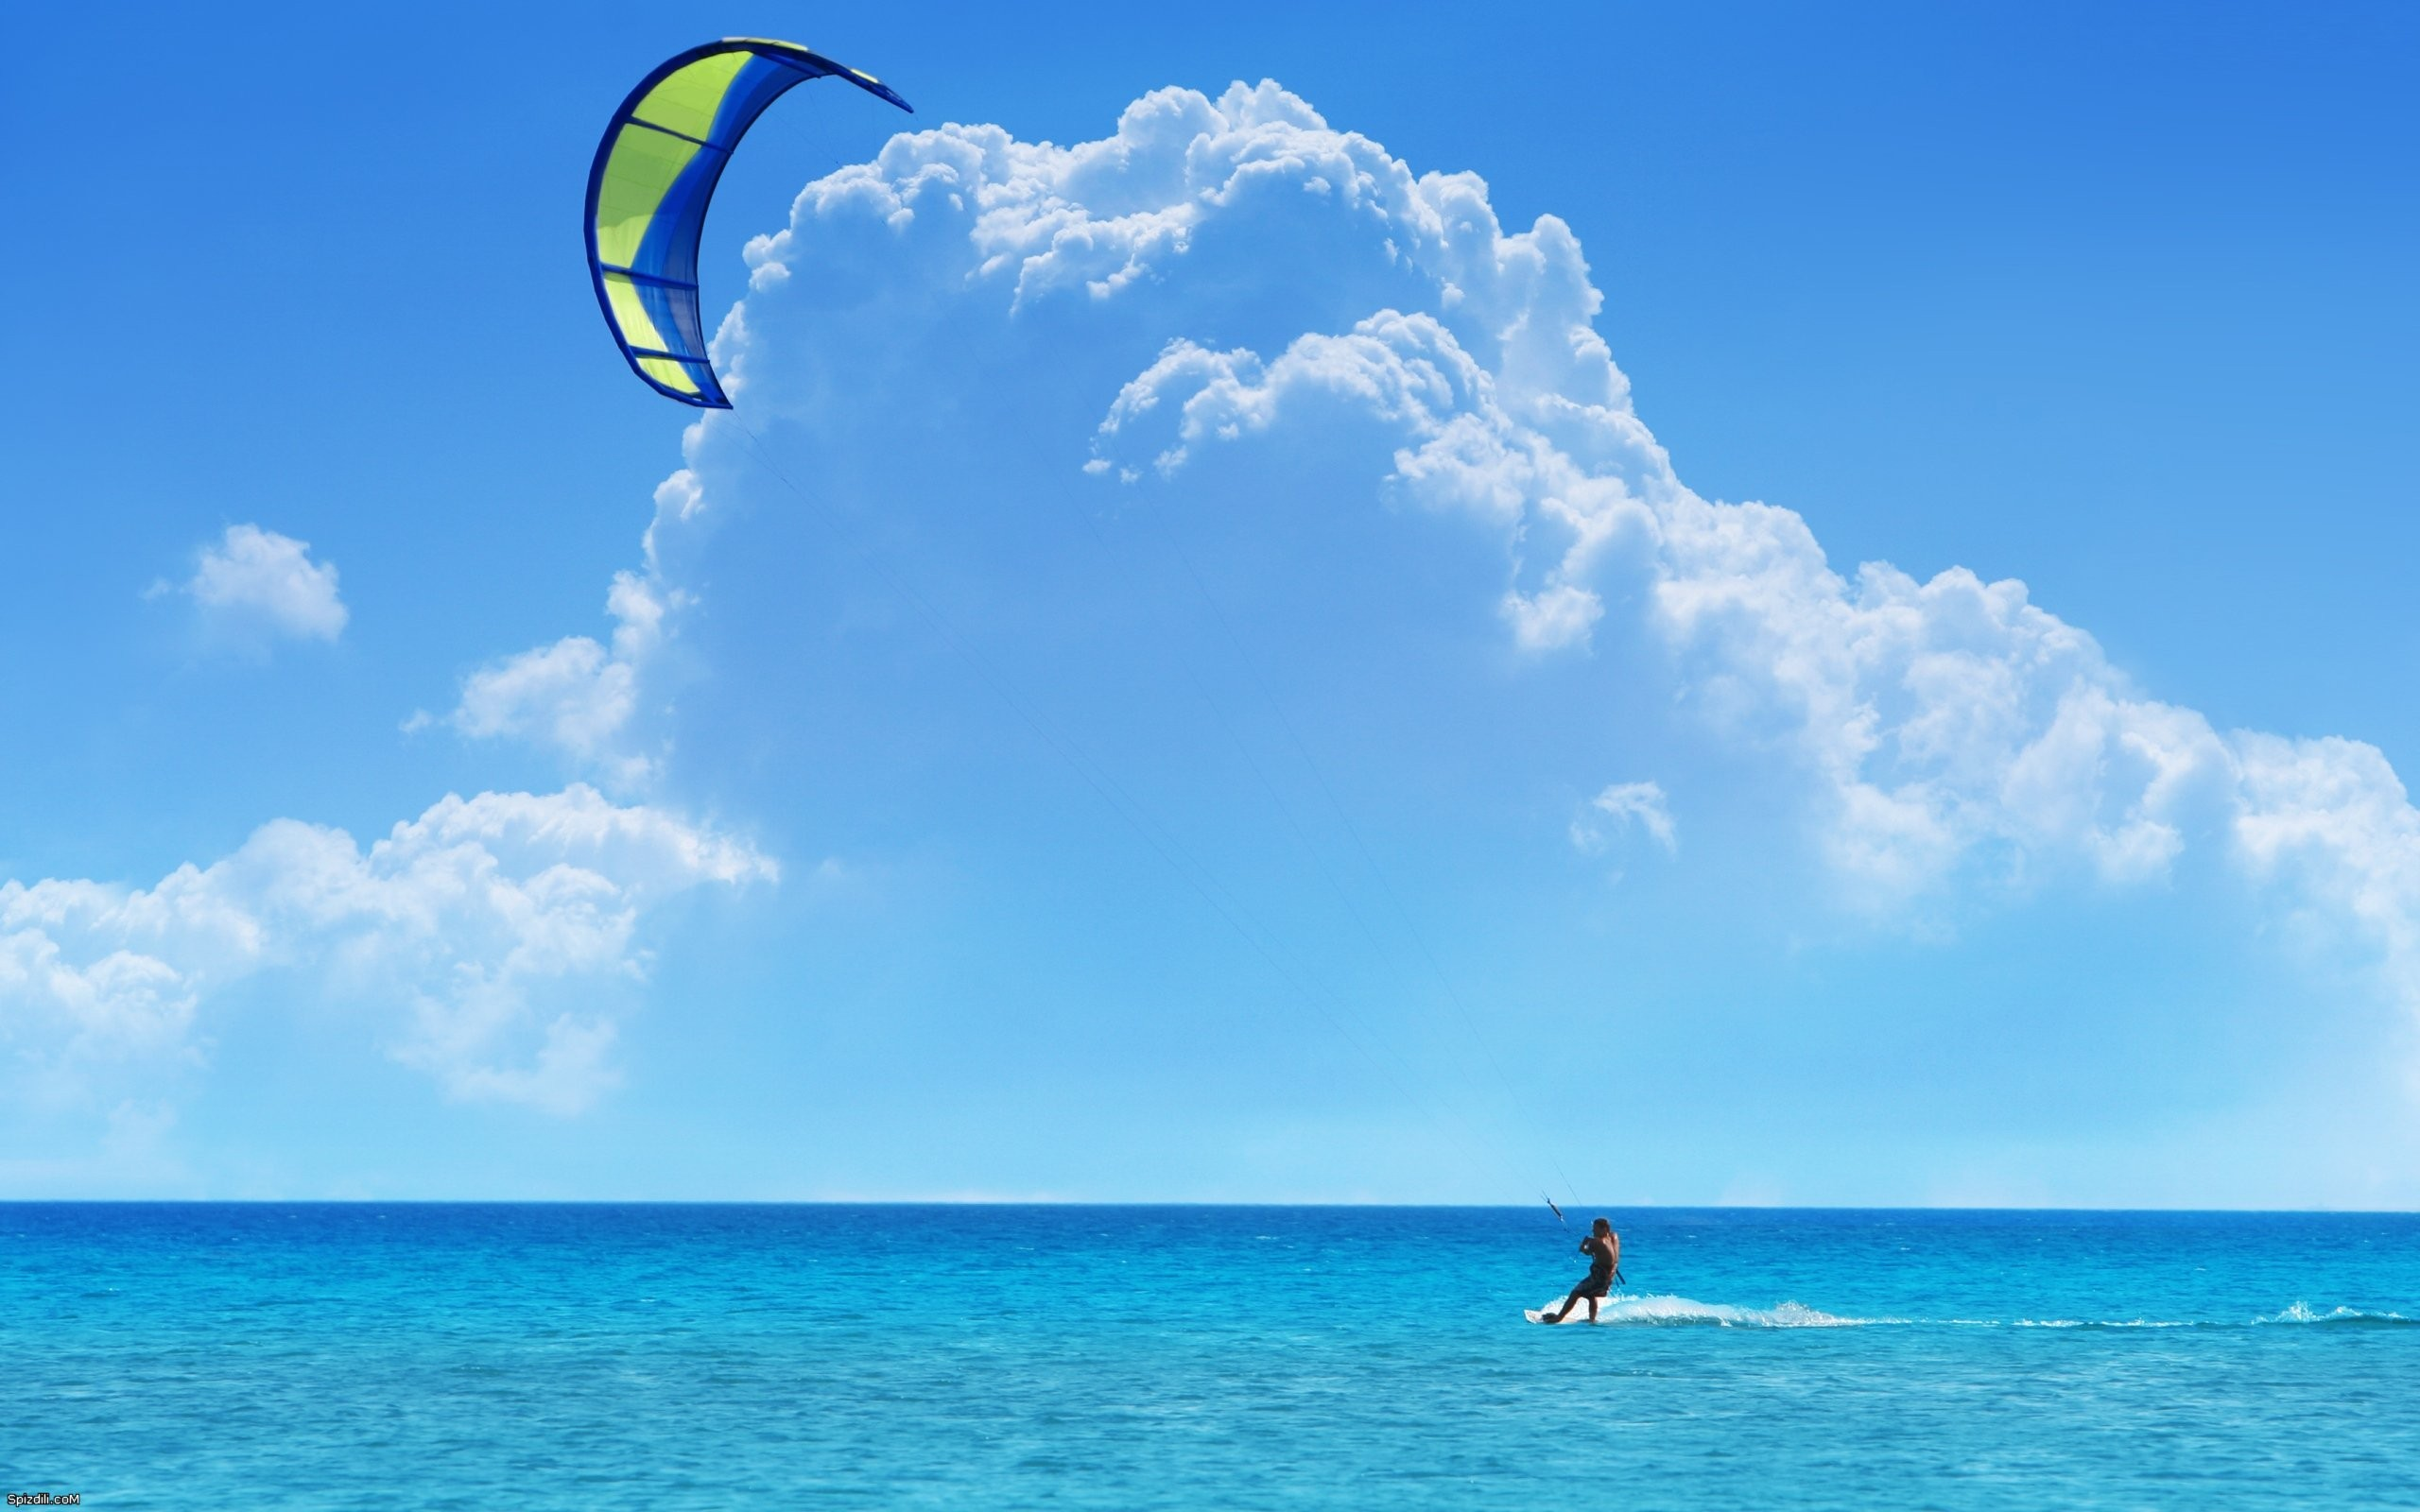 Kite Surfing - 2560x1600